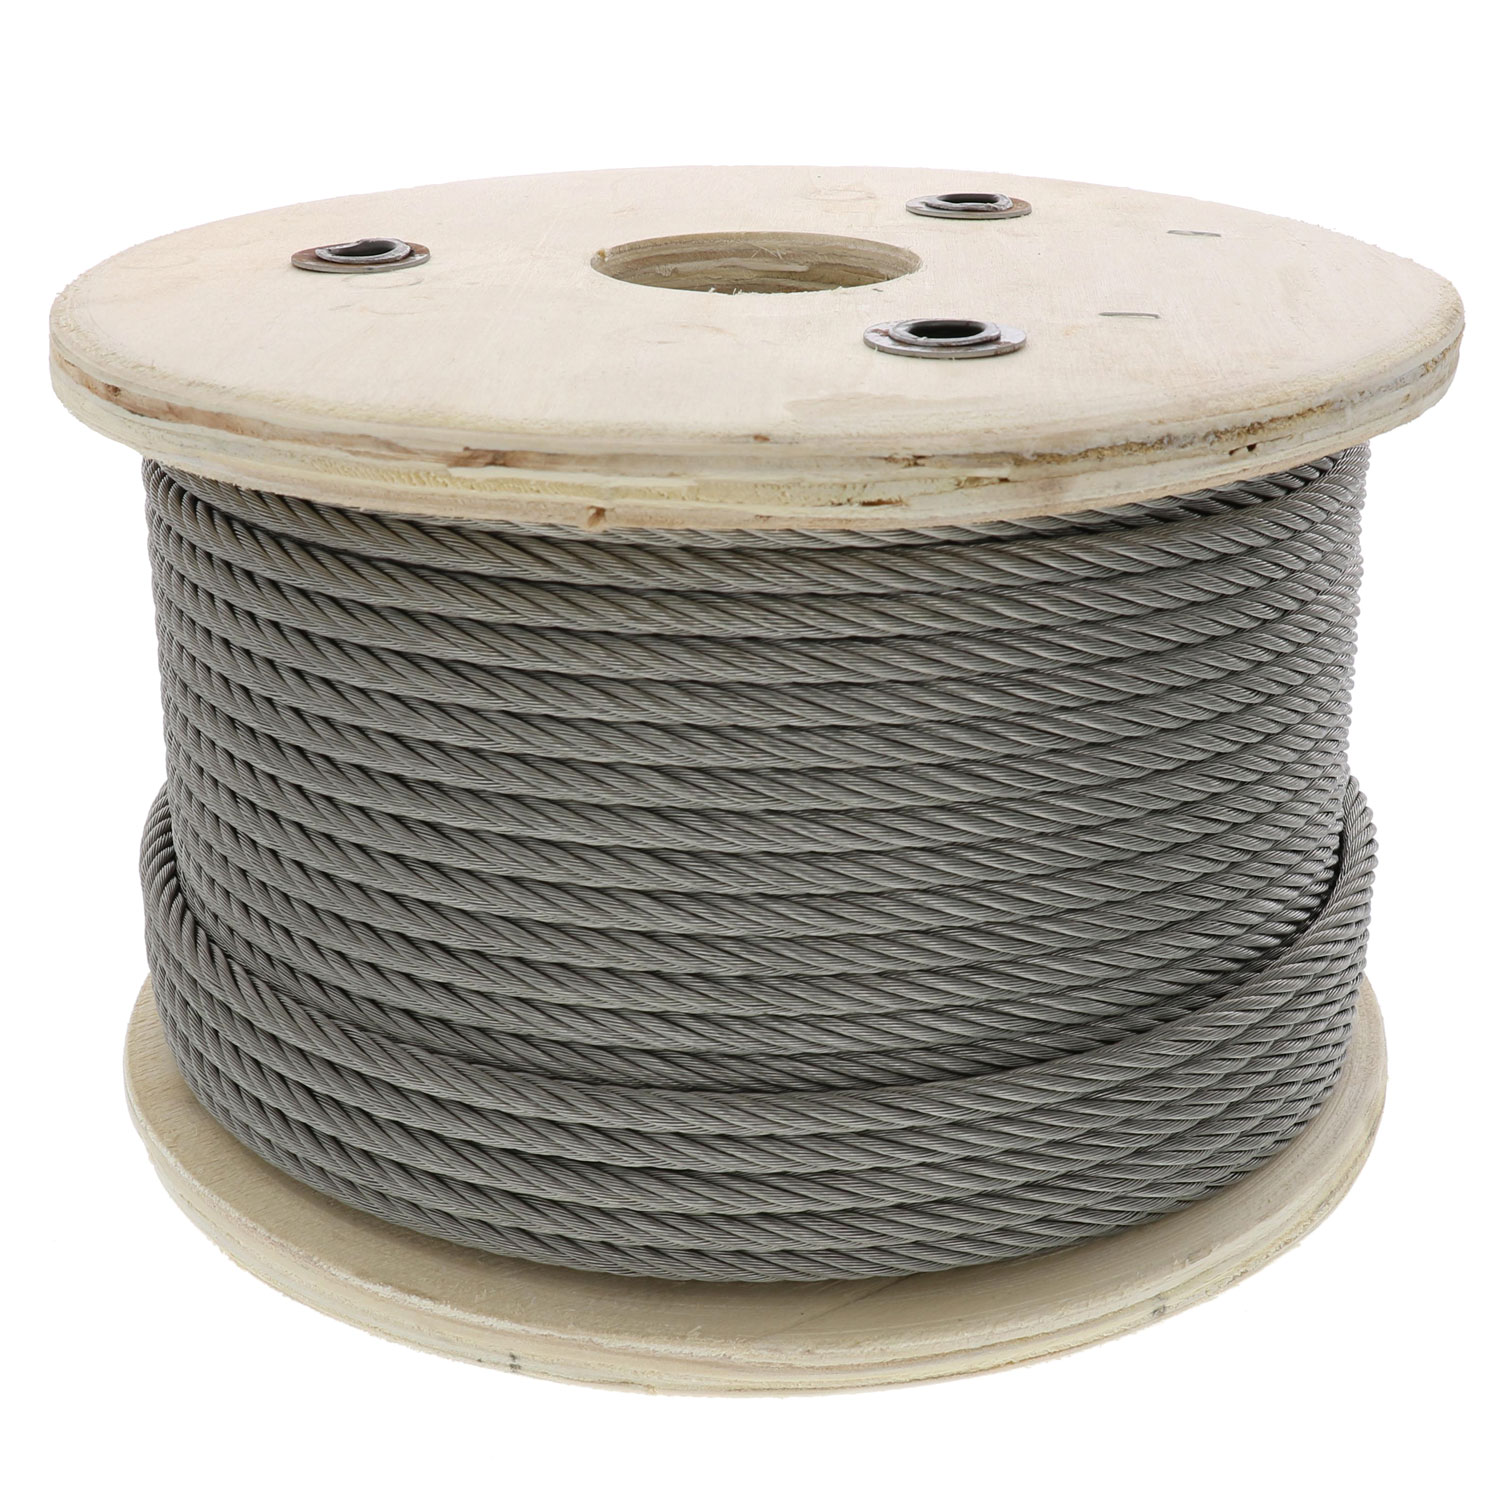 3⁄8 inch, 7 x 19 Type 304 Stainless Steel Cable